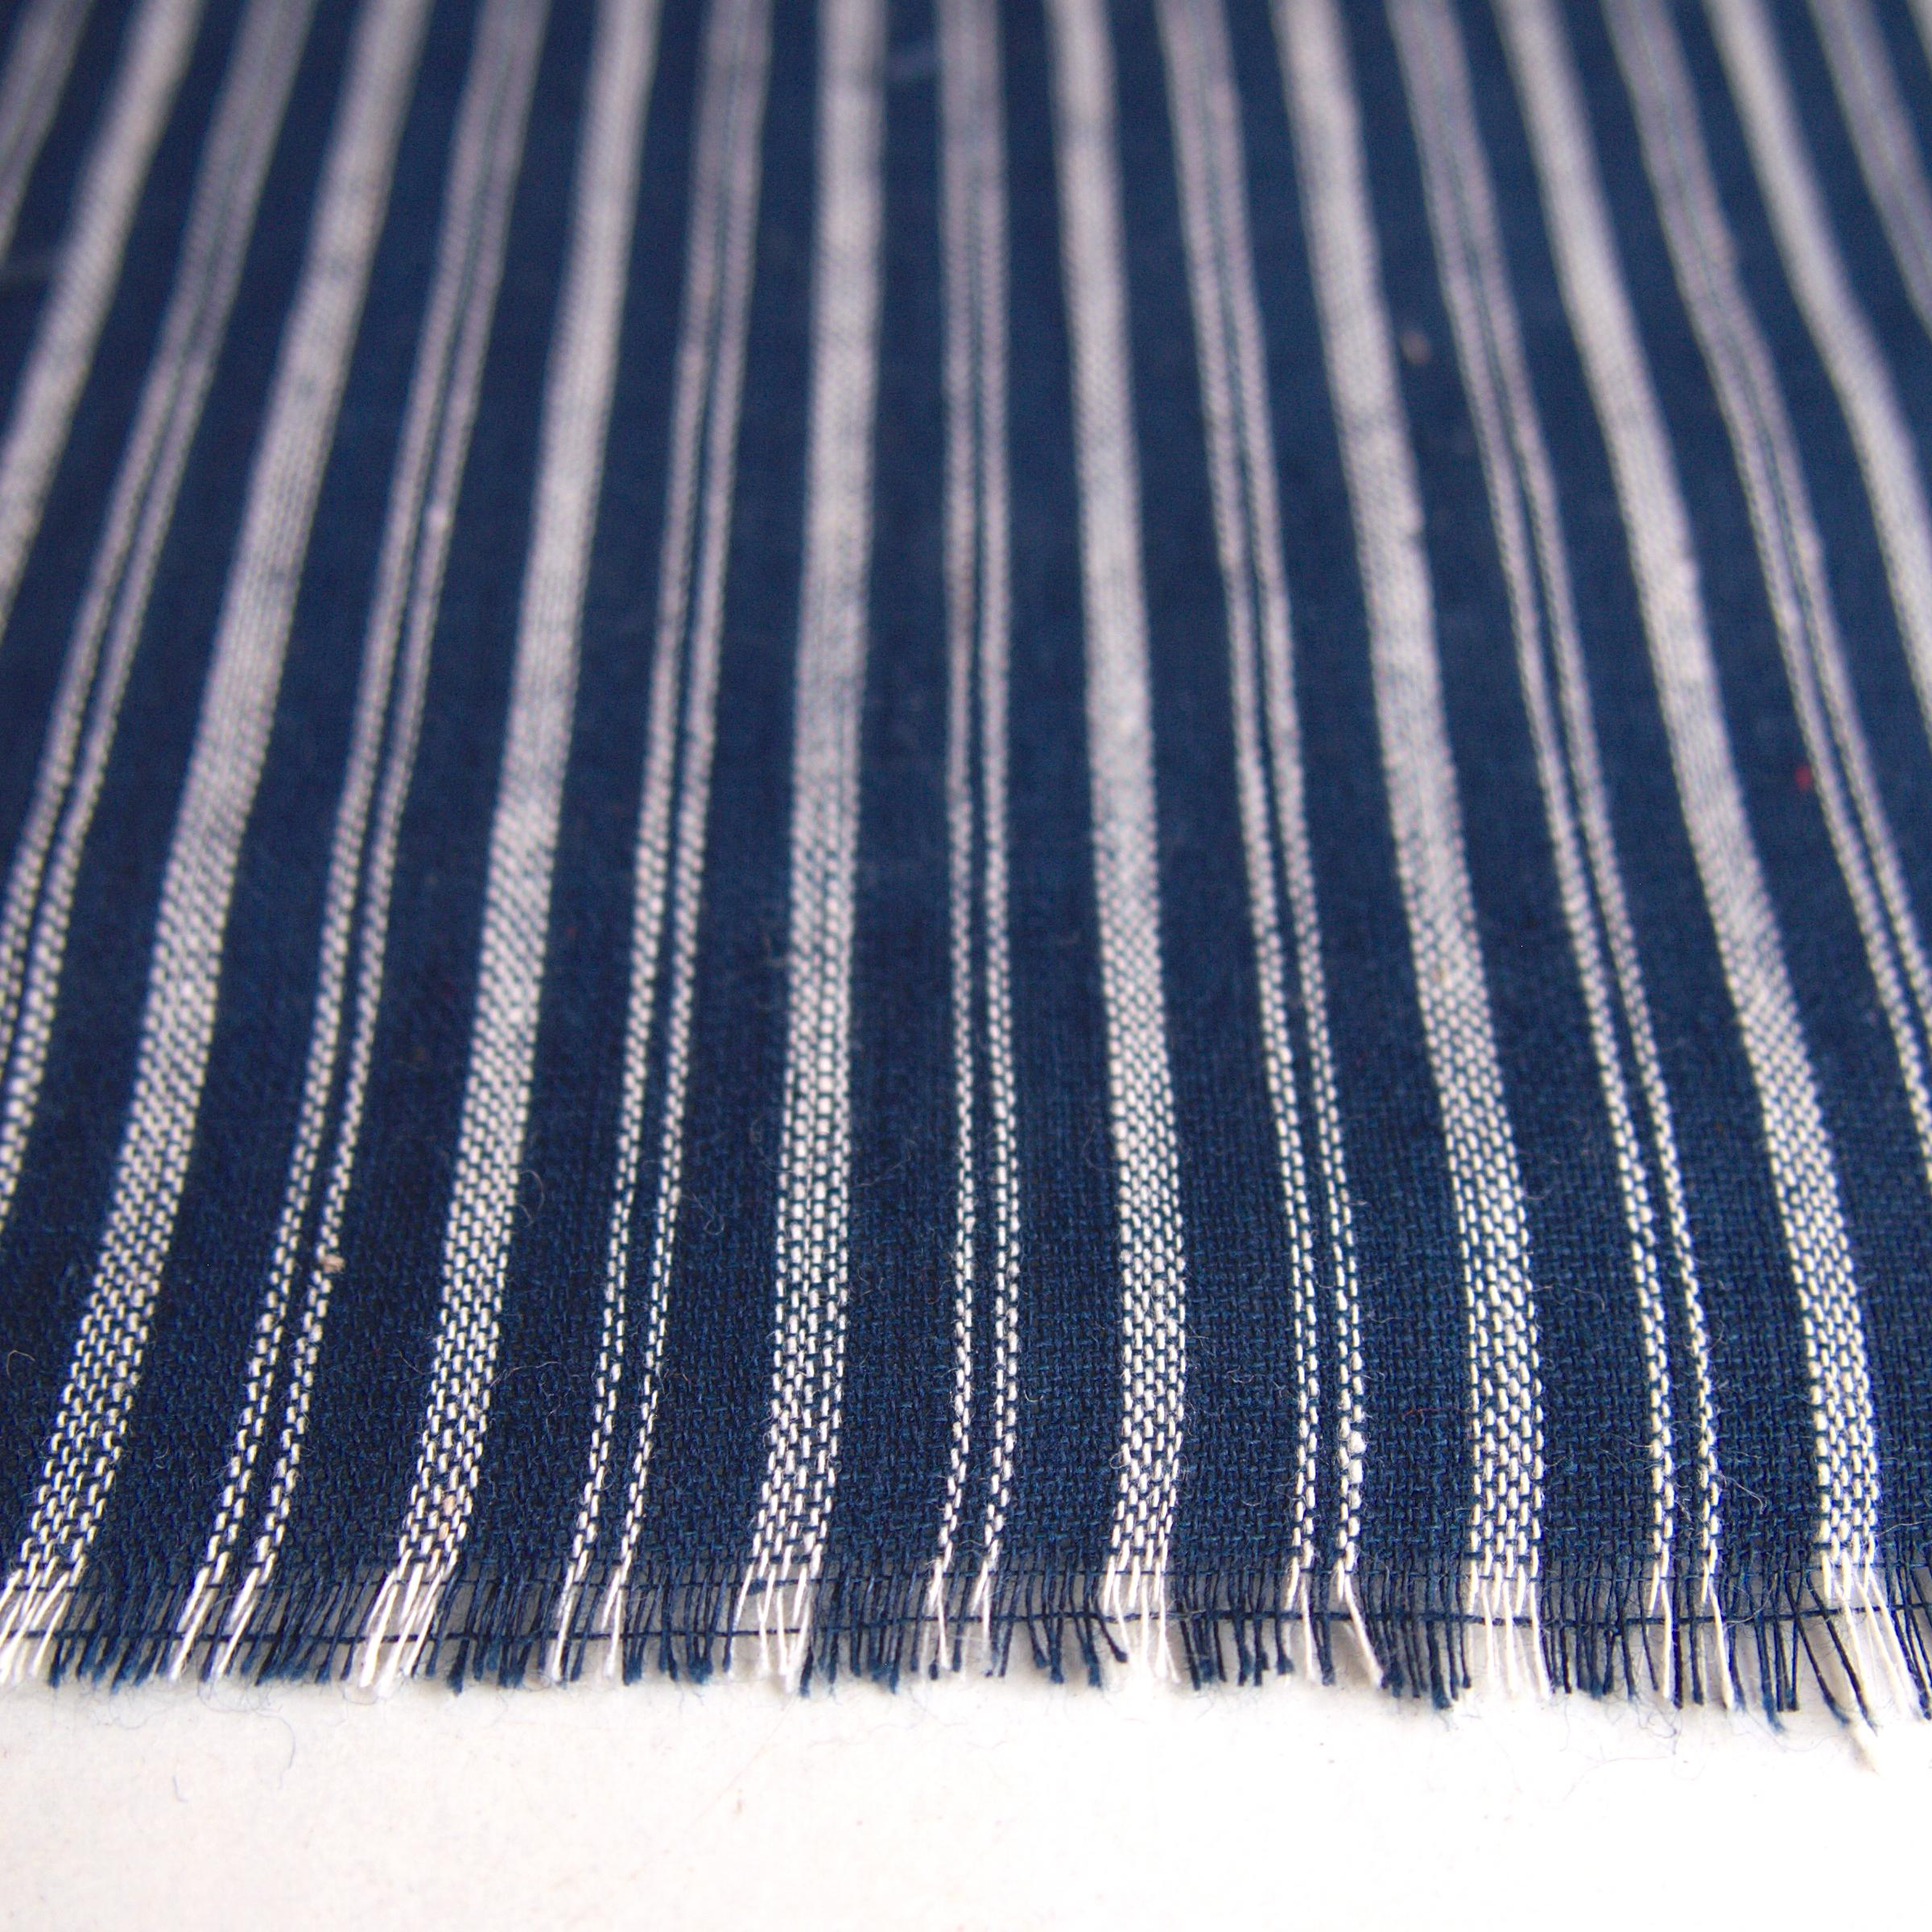 100% Handloom Woven Cotton - Double Stripes - Natural Indigo Warp & Weft, White Warp - Close Up